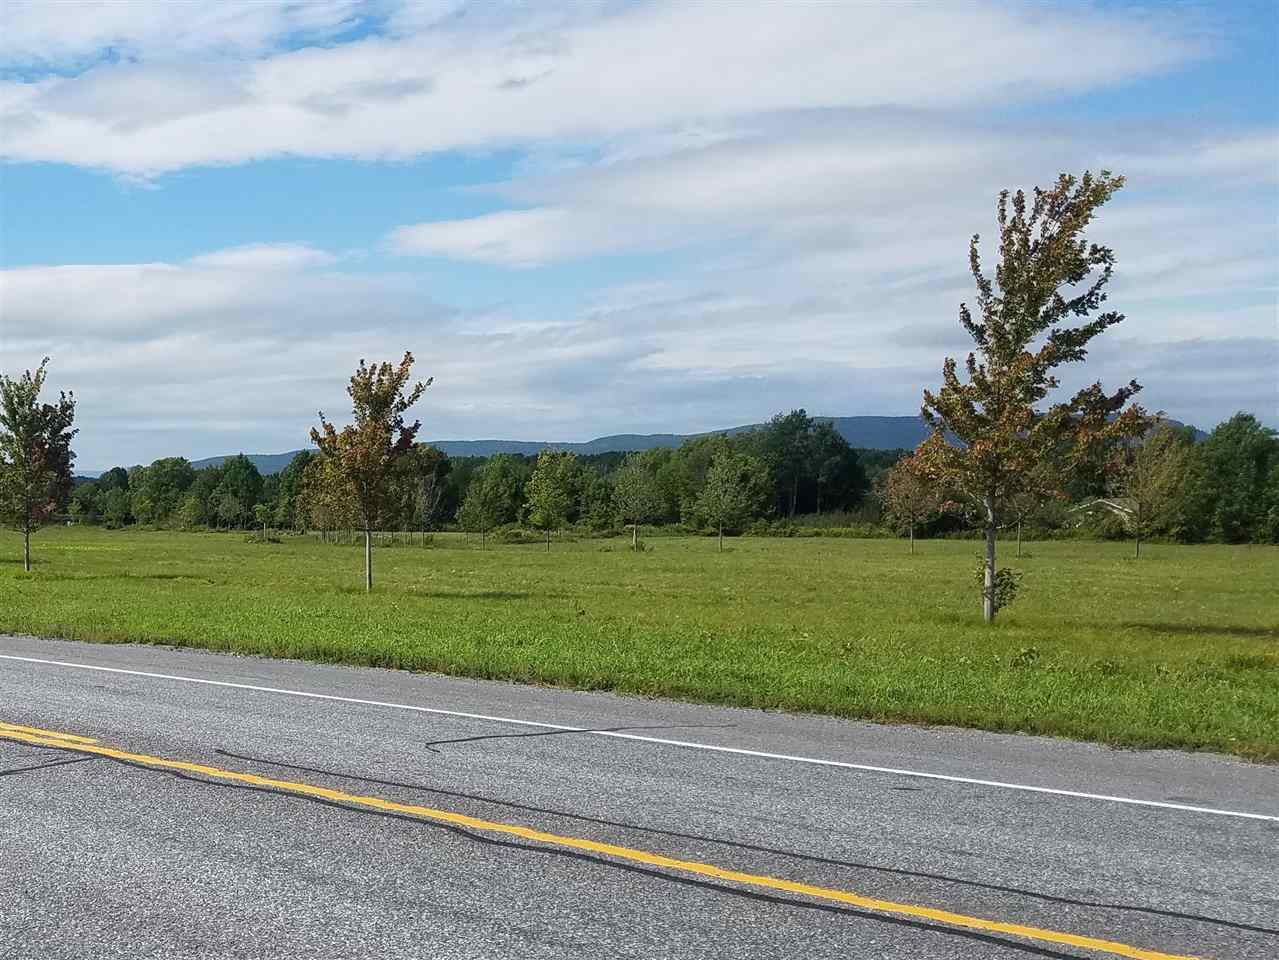 Ready to build commercial lot with great exposure on Route 7! Lot #3 has 2.5 acres of area and has approximately 250 feet of road frontage on Route 7. Gently sloping lot is ready for your business. Electric and septic have been piped to the lots and will be ready for hook-up. 3 Phase Power Available! Don't miss the opportunity to locate your business in this 5 unit subdivision in the heart of Addison County.